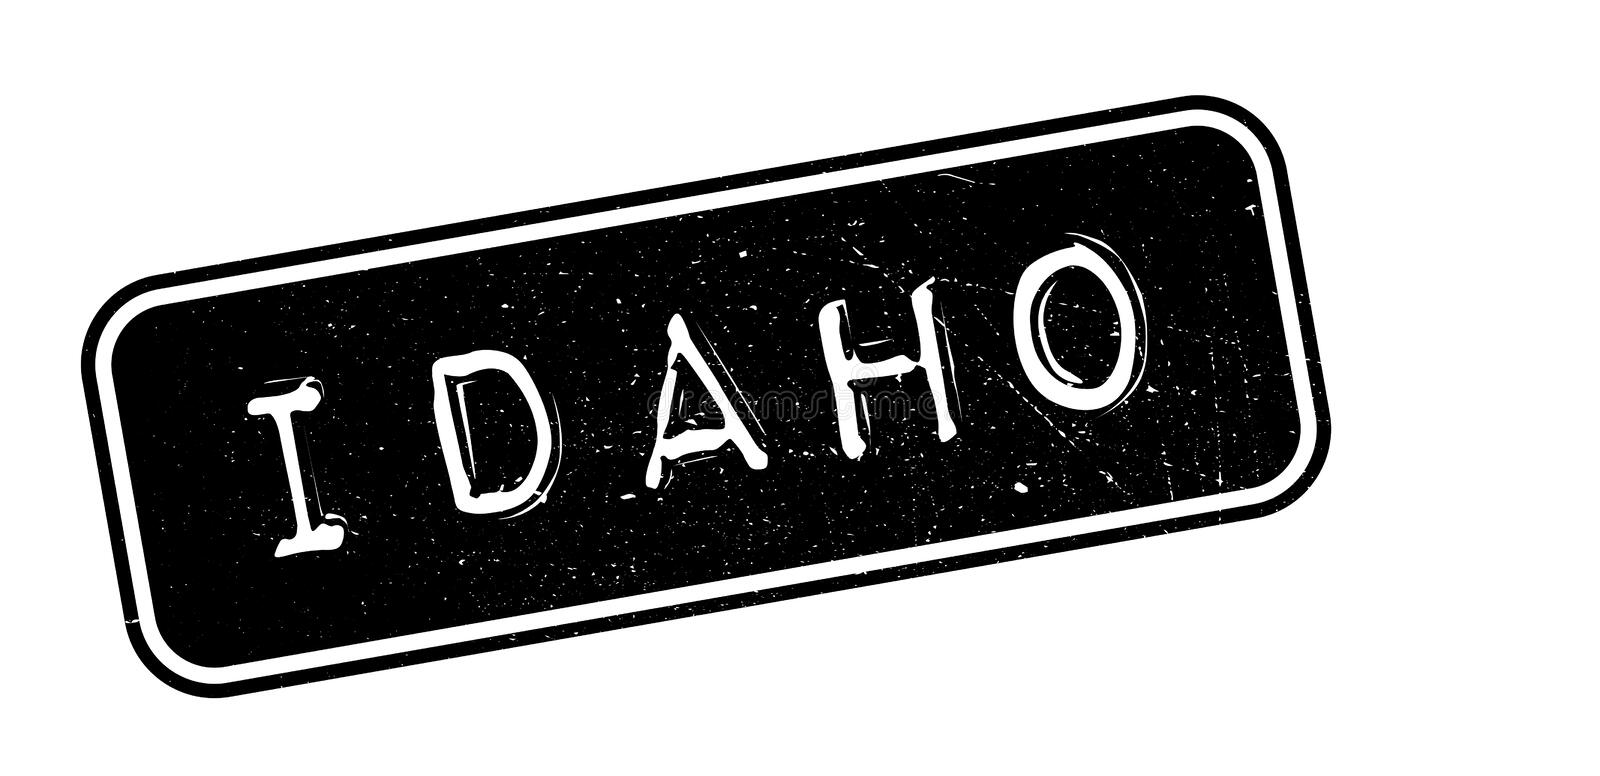 Idaho rubber stamp royalty free illustration